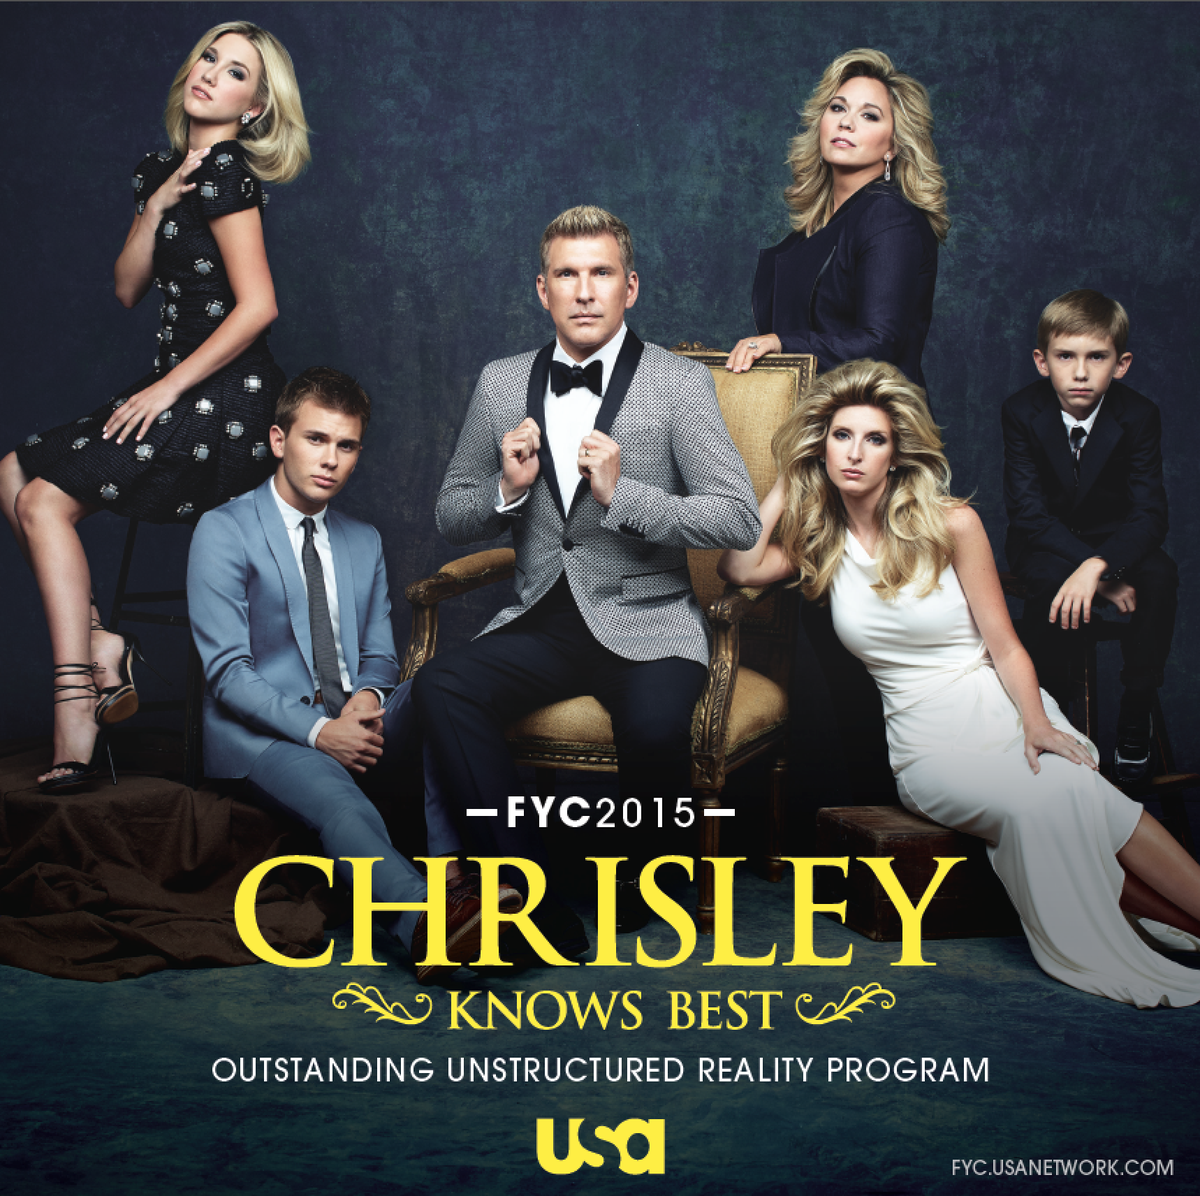 The Chrisleys are quite a family. Vote for @Chrisley_USA for #Emmy consideration. Watch here: http://t.co/2HeAKA6UKx http://t.co/xKEwEc3i06